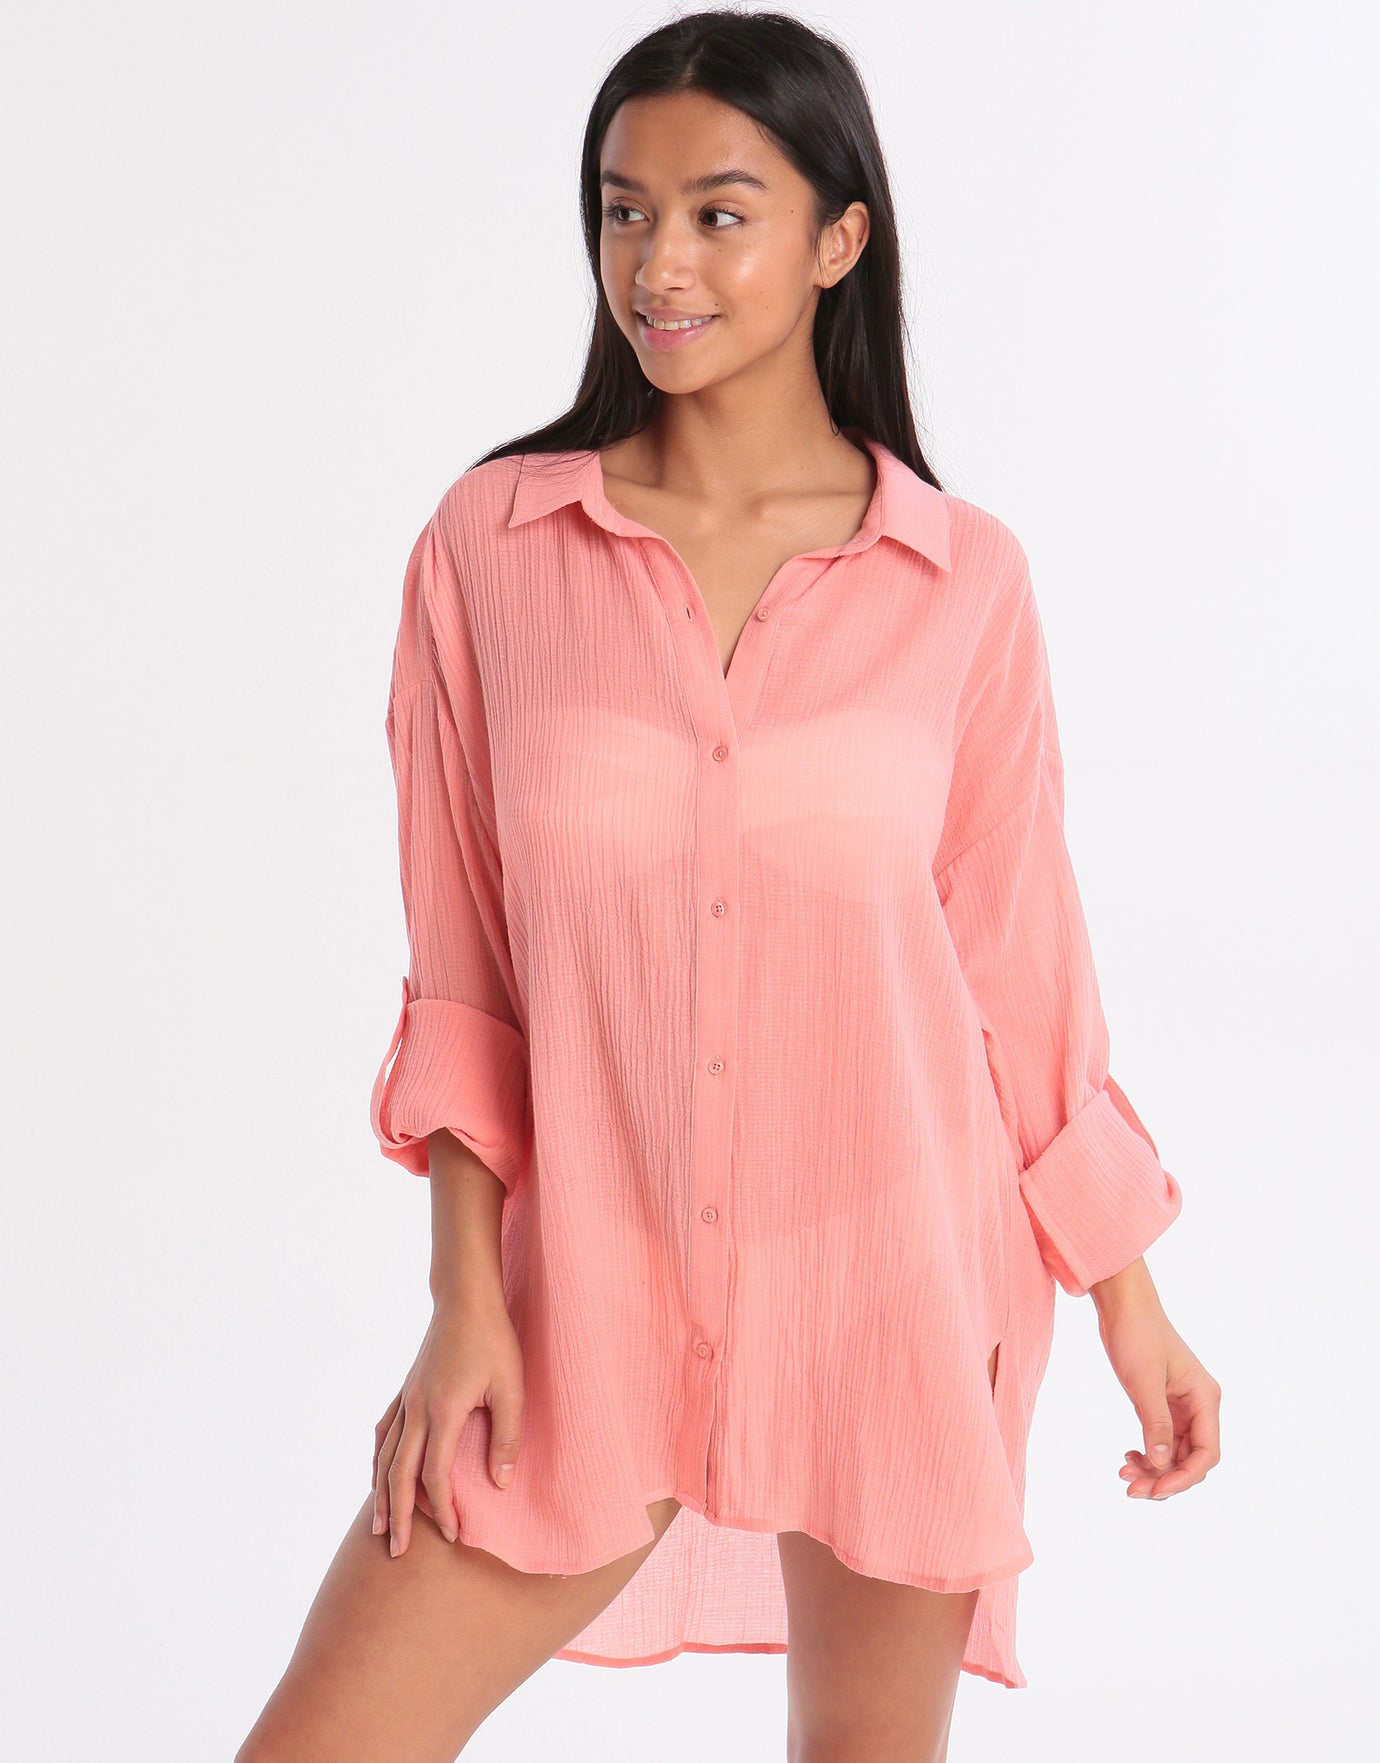 Seafolly Classic Beach Shirt - Peach